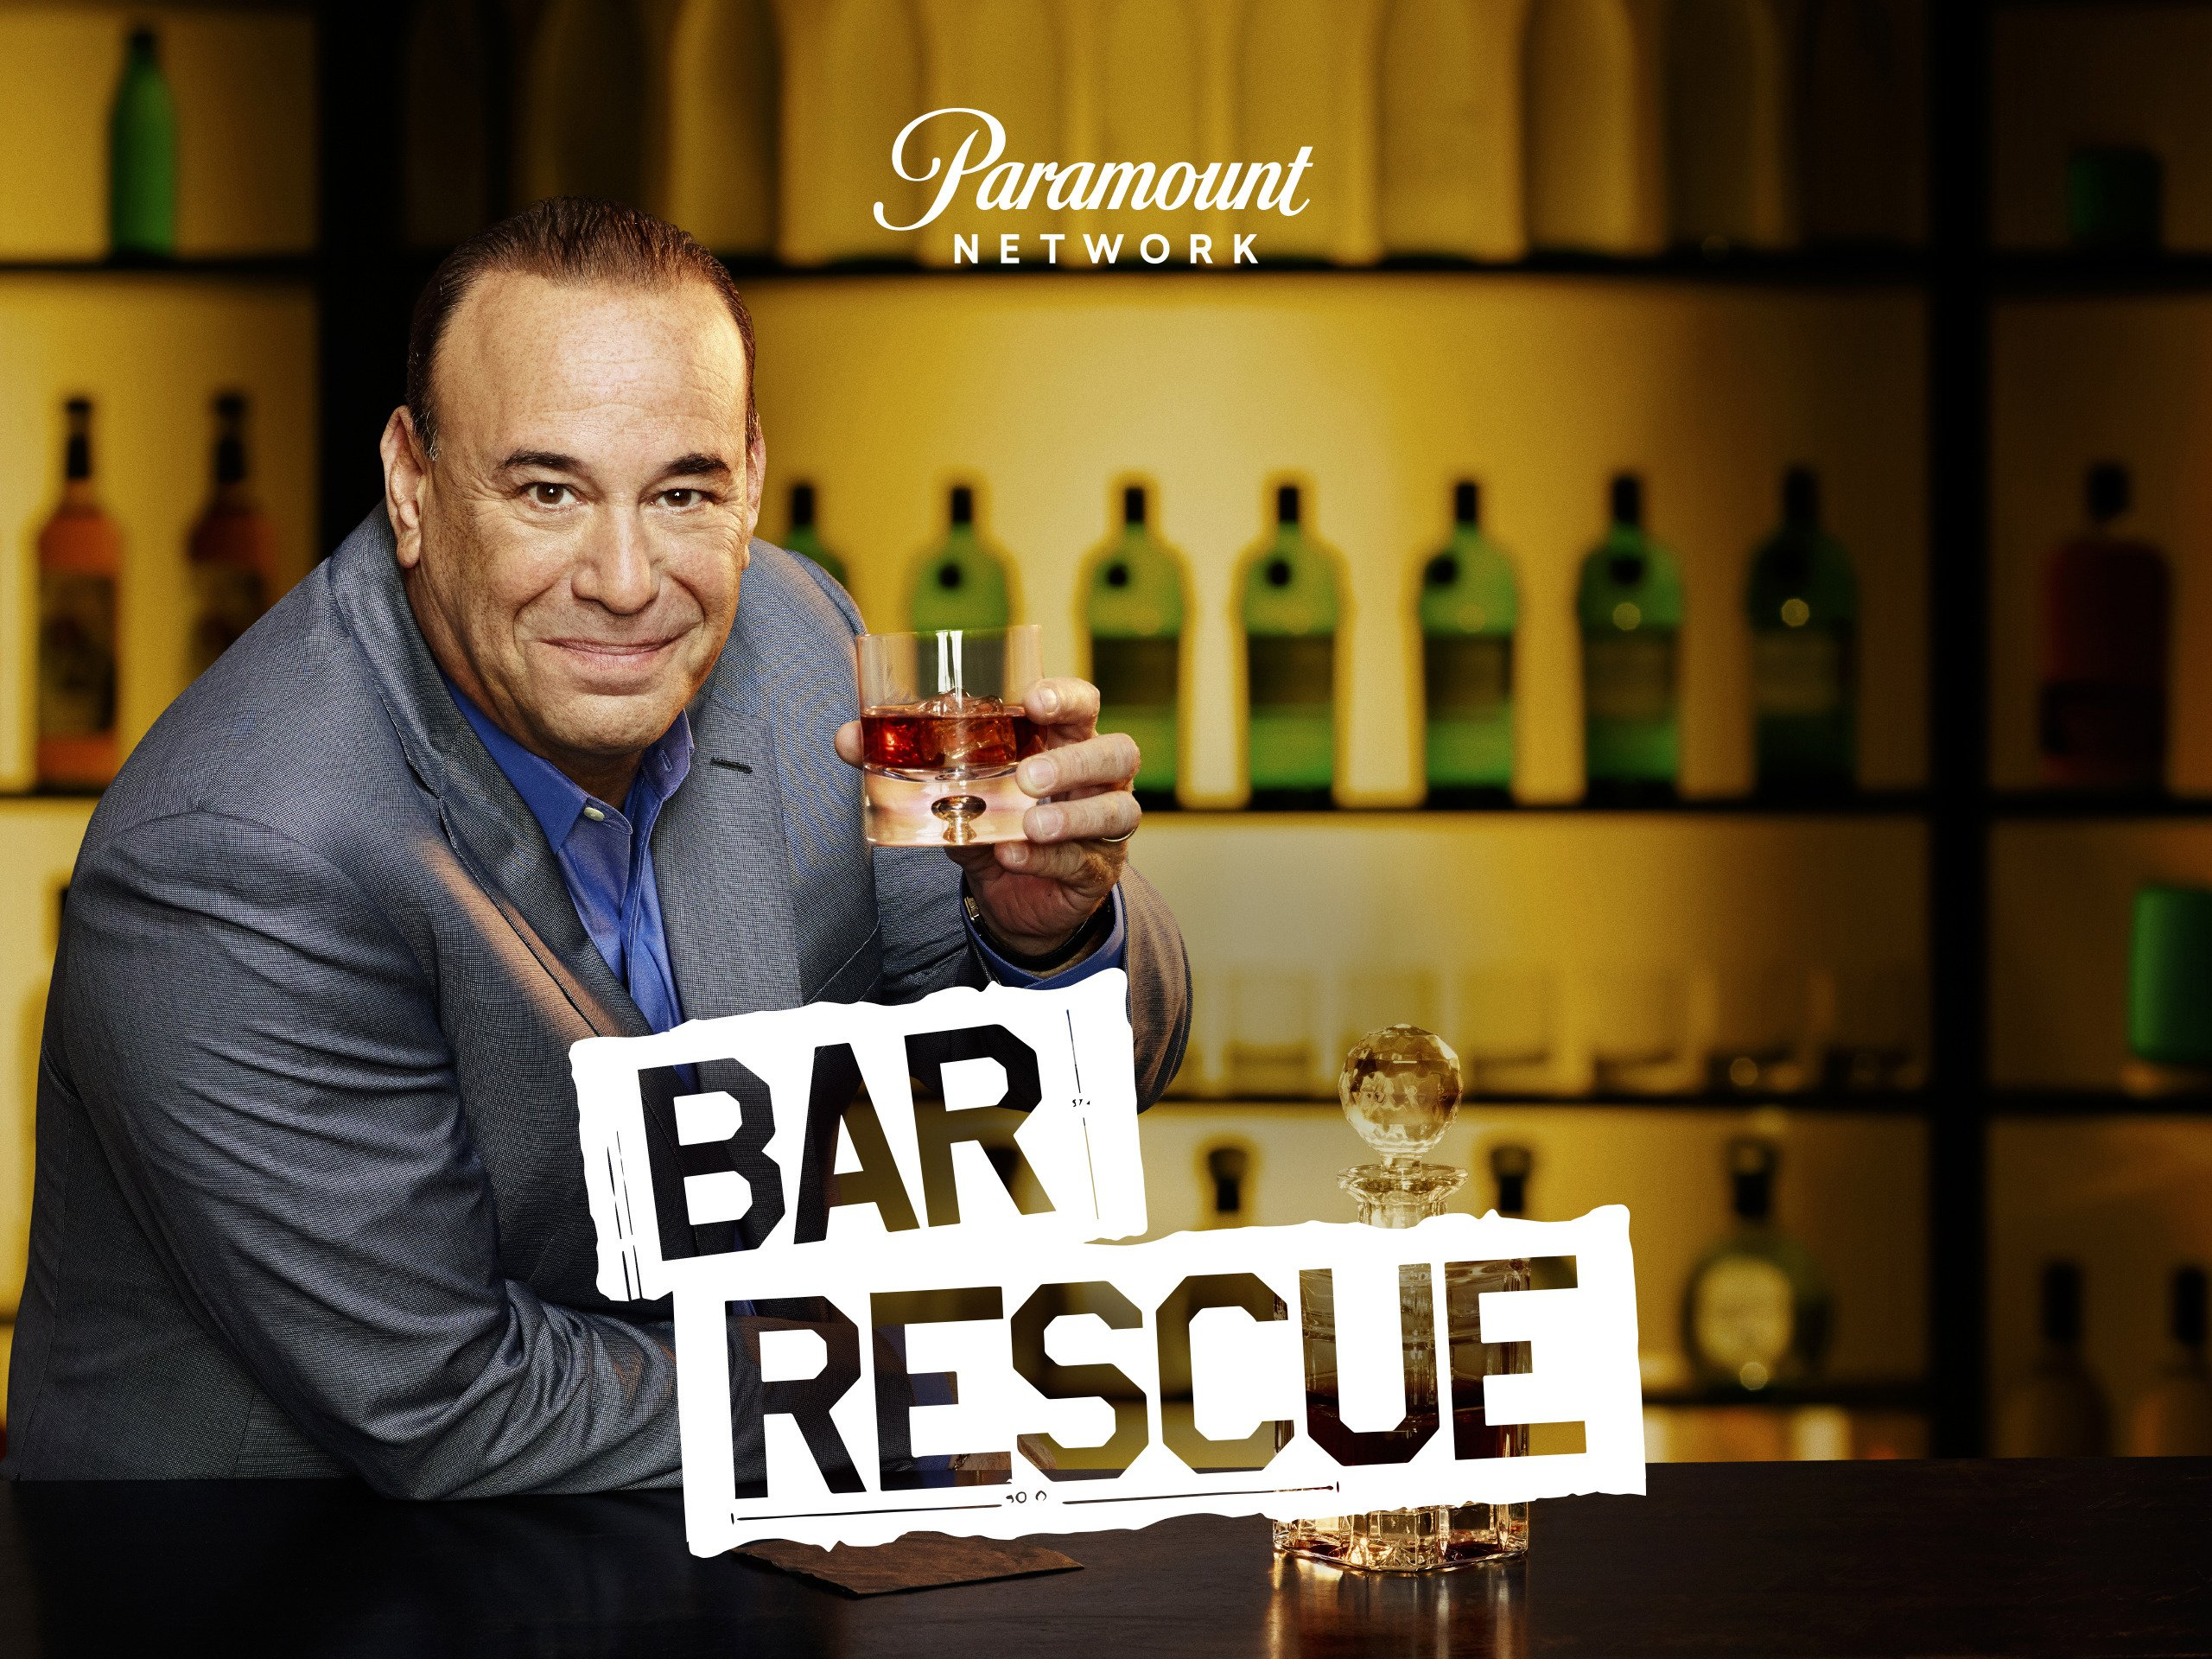 Bar Rescue Cast: Where Are They Now And What Are They Doing?